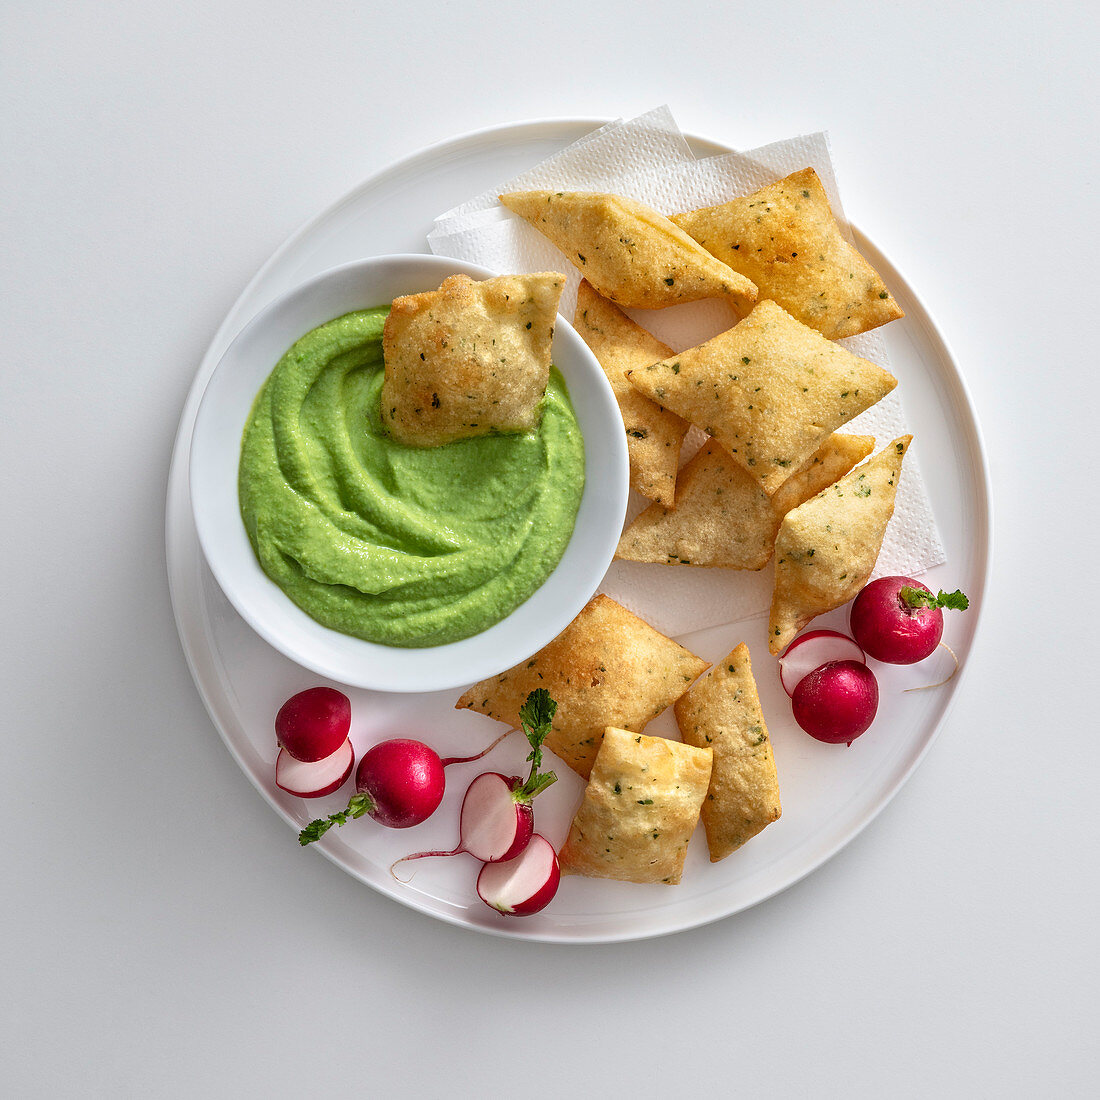 Fava bean cream with fried herb pillows and radishes